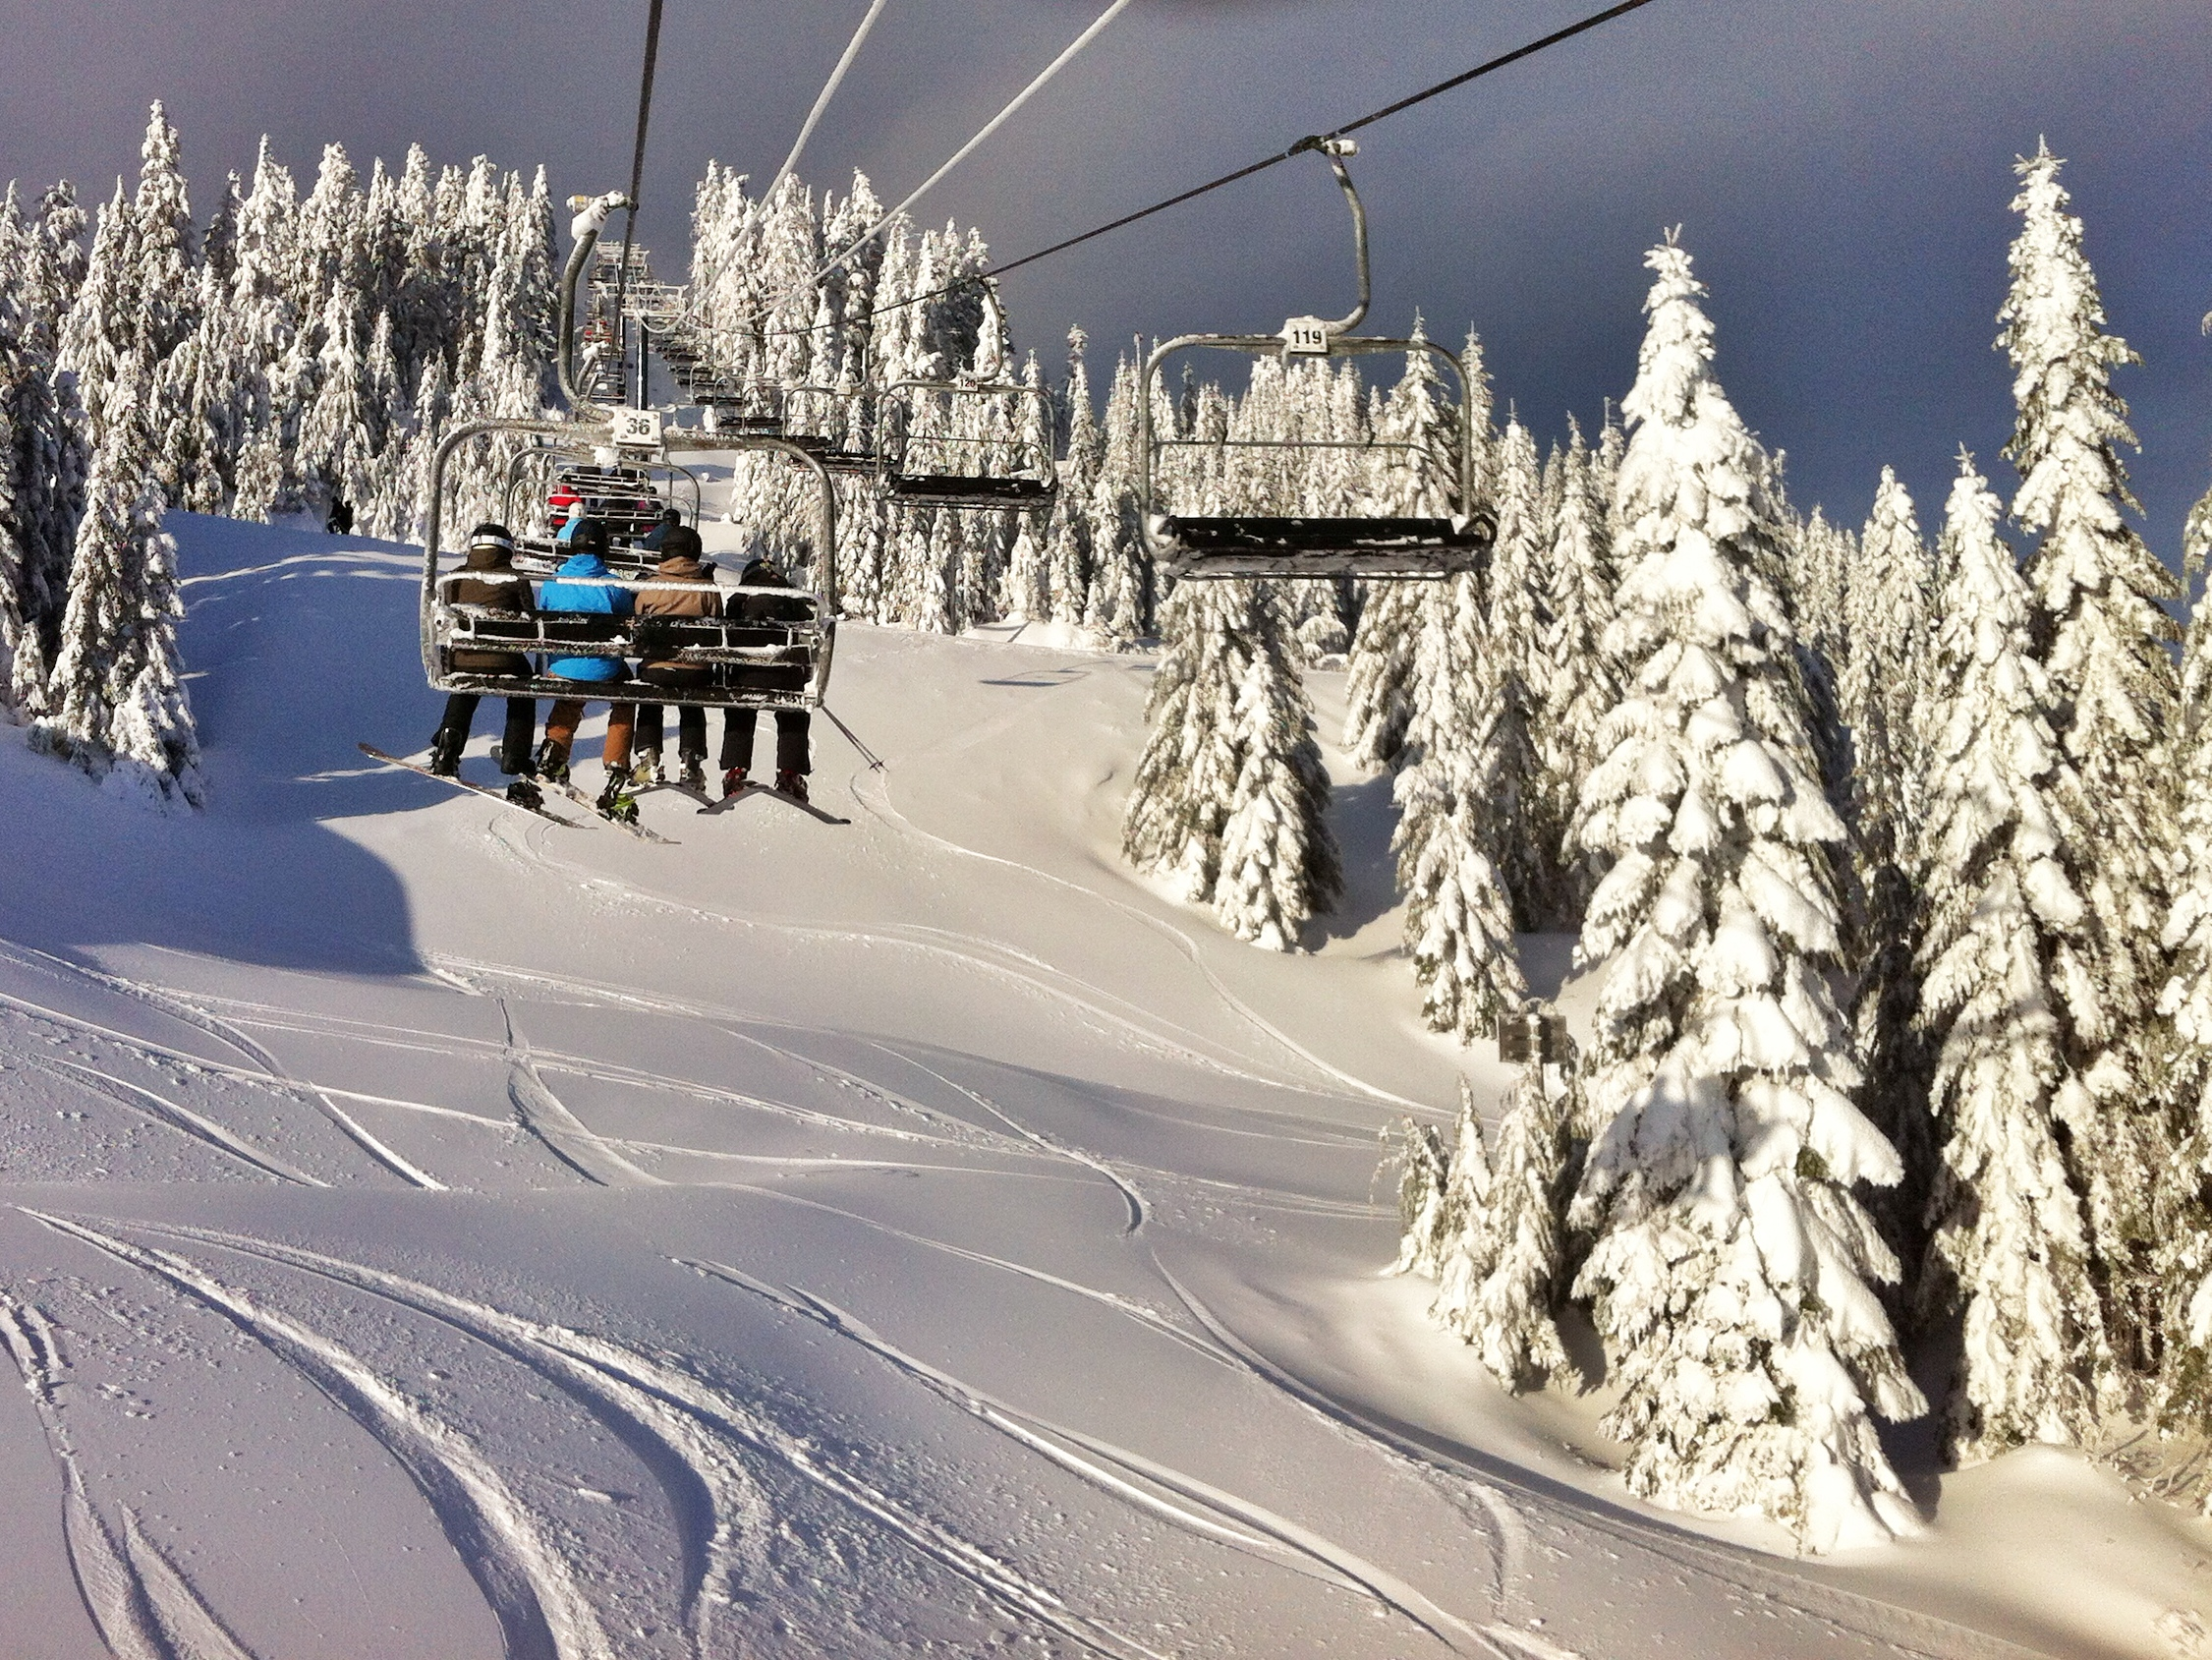 my goal to visit every ski resort in british columbia